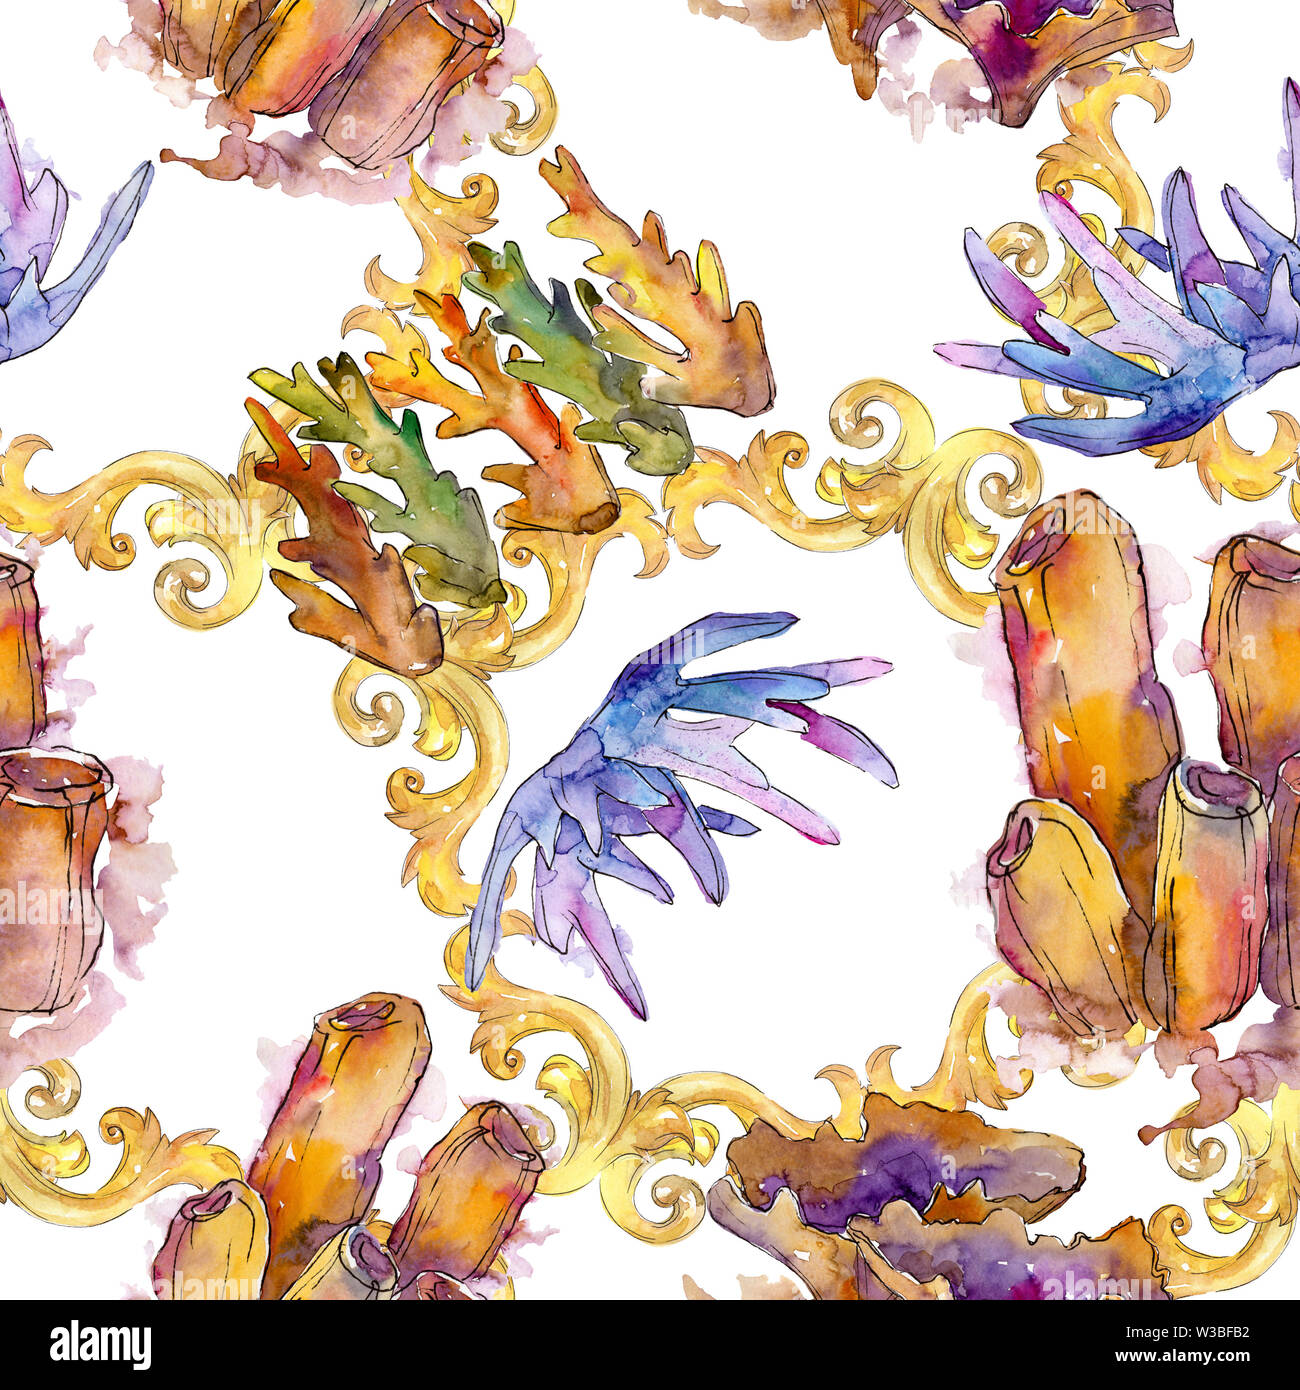 Colorful aquatic underwater nature coral reef. Watercolor illustration set. Seamless background pattern. - Stock Image